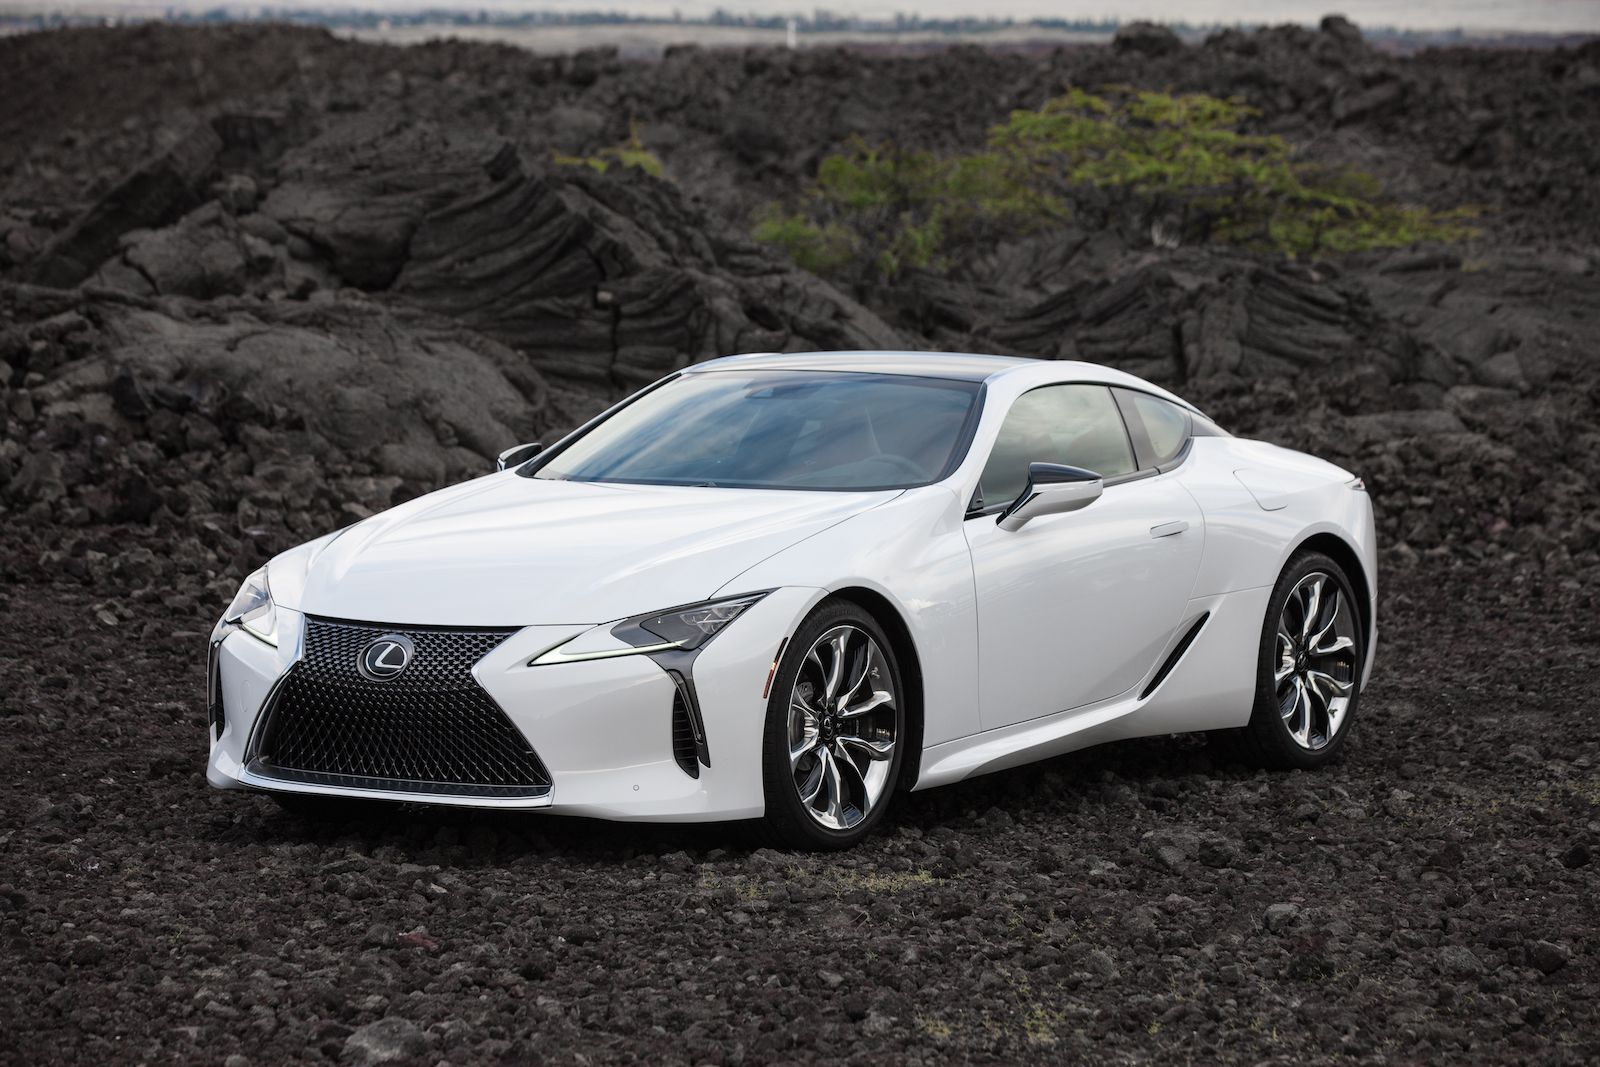 Related image Lexus lc, Lexus cars, Japanese sports cars